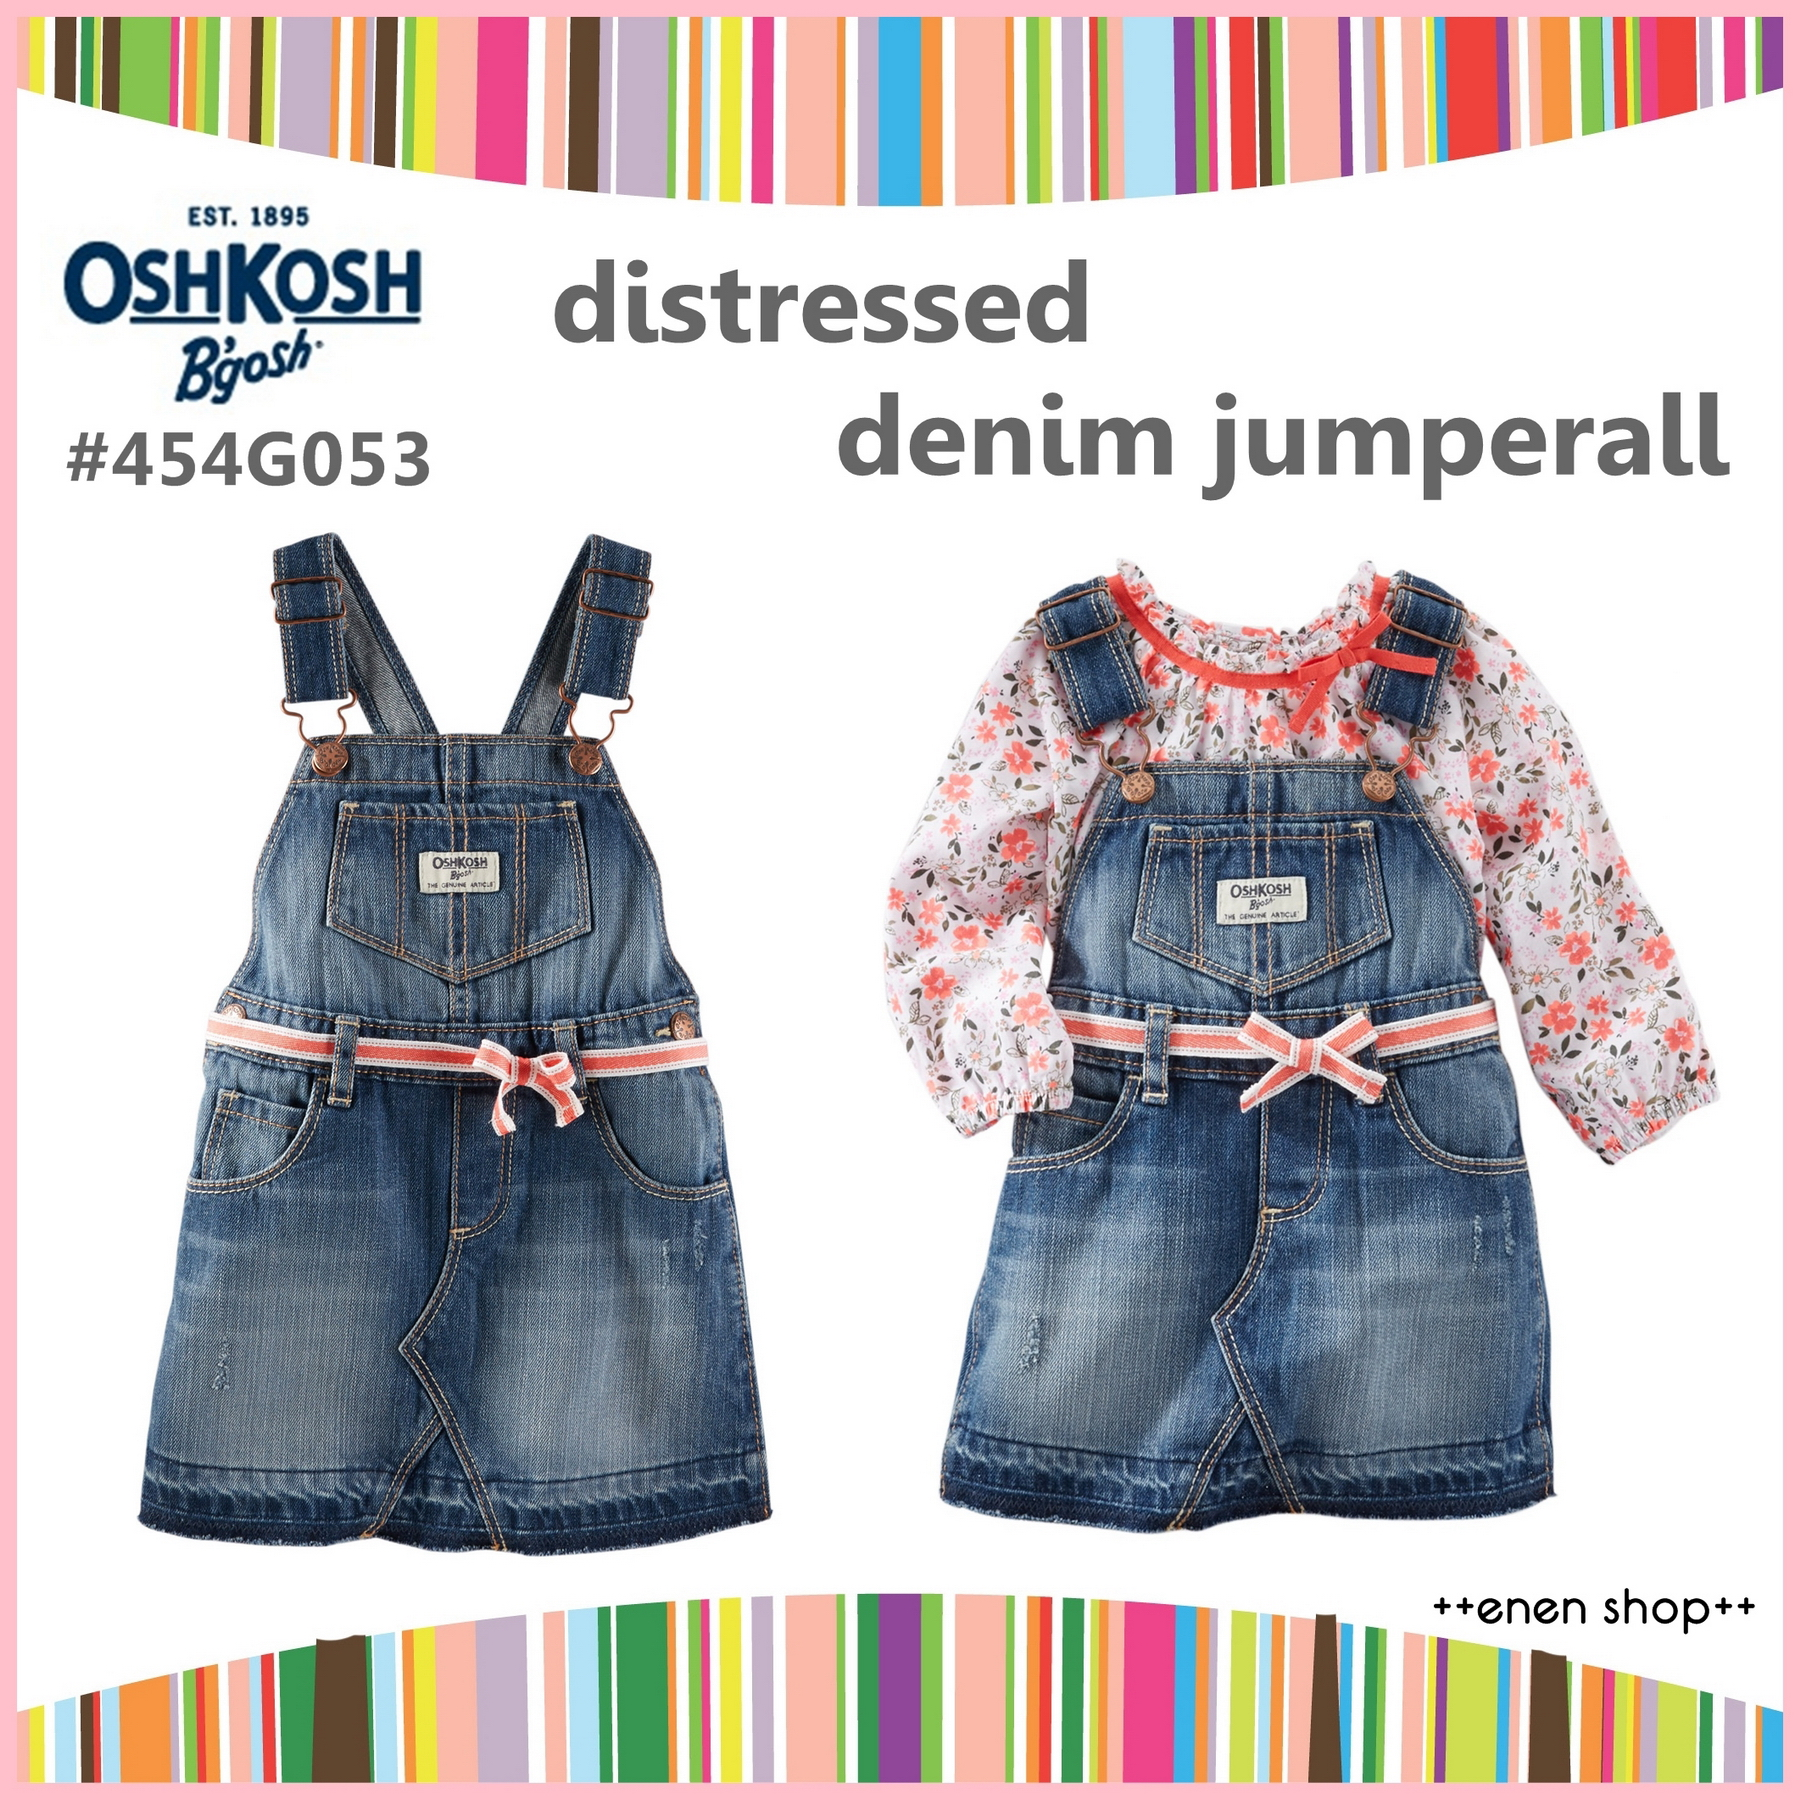 ++enen shop++ OshKosh B'gosh 俏皮牛仔吊帶裙 ∥ 12M/18M/24M/2T/4T